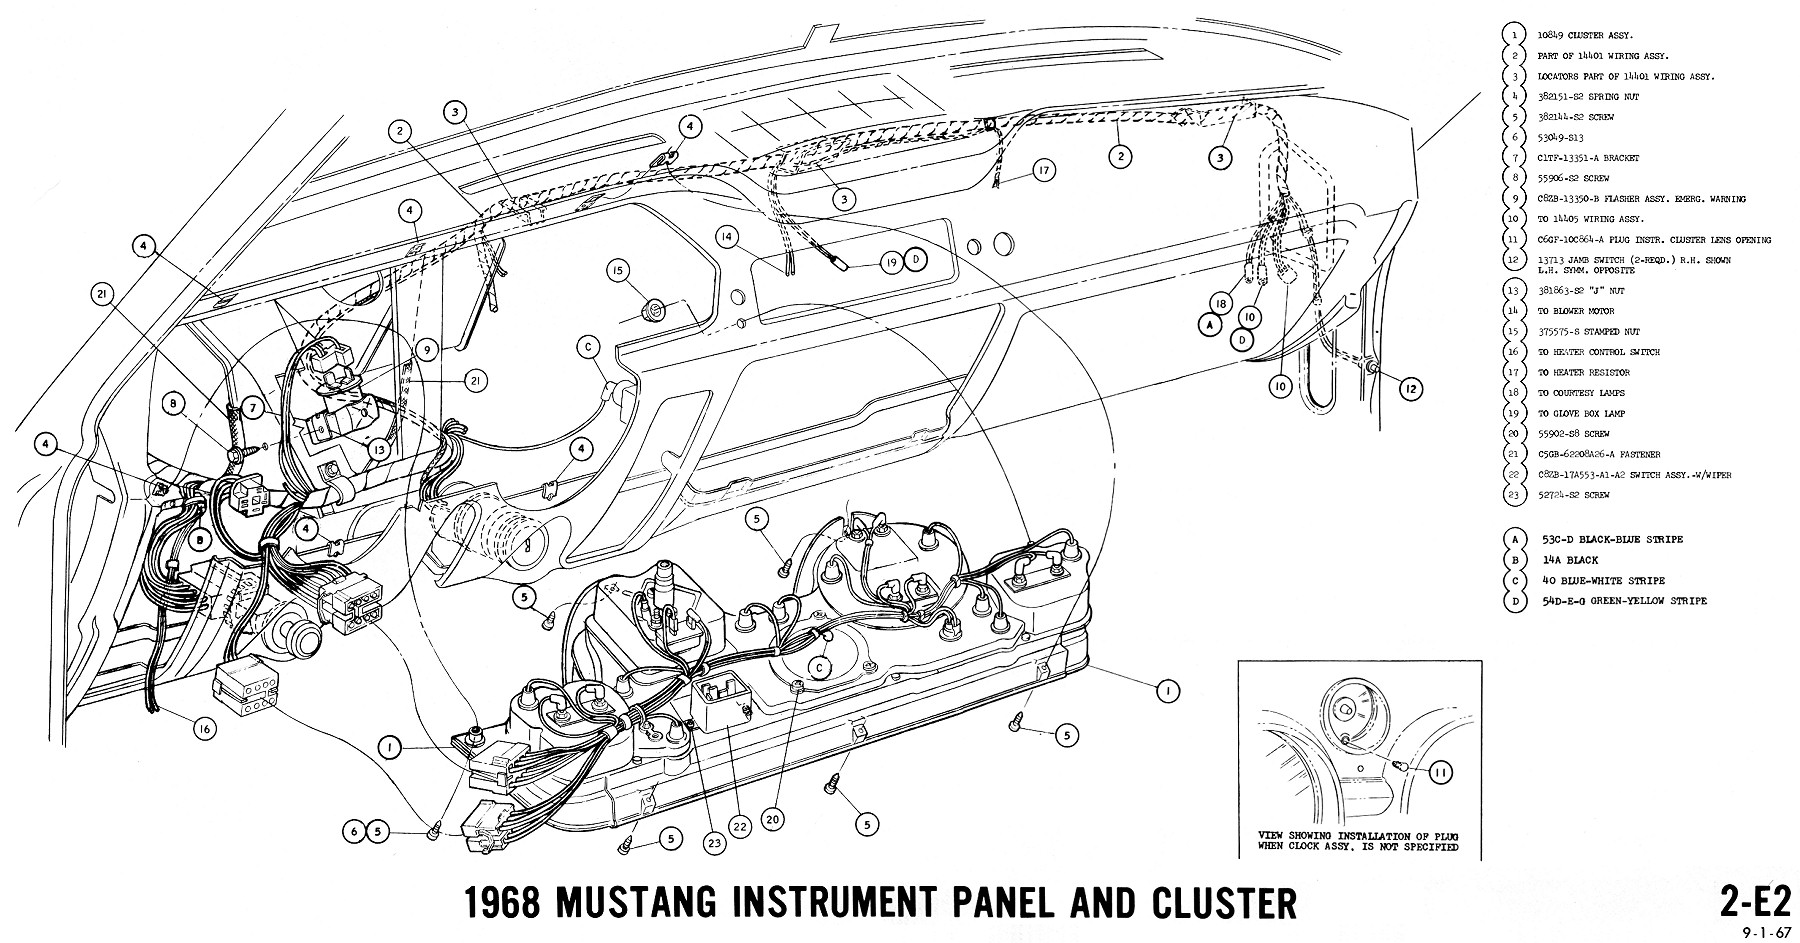 1968 mustang wiring diagrams evolving software rh peterfranza com 1966 mustang wiring diagram color 1966 mustang wiring diagram